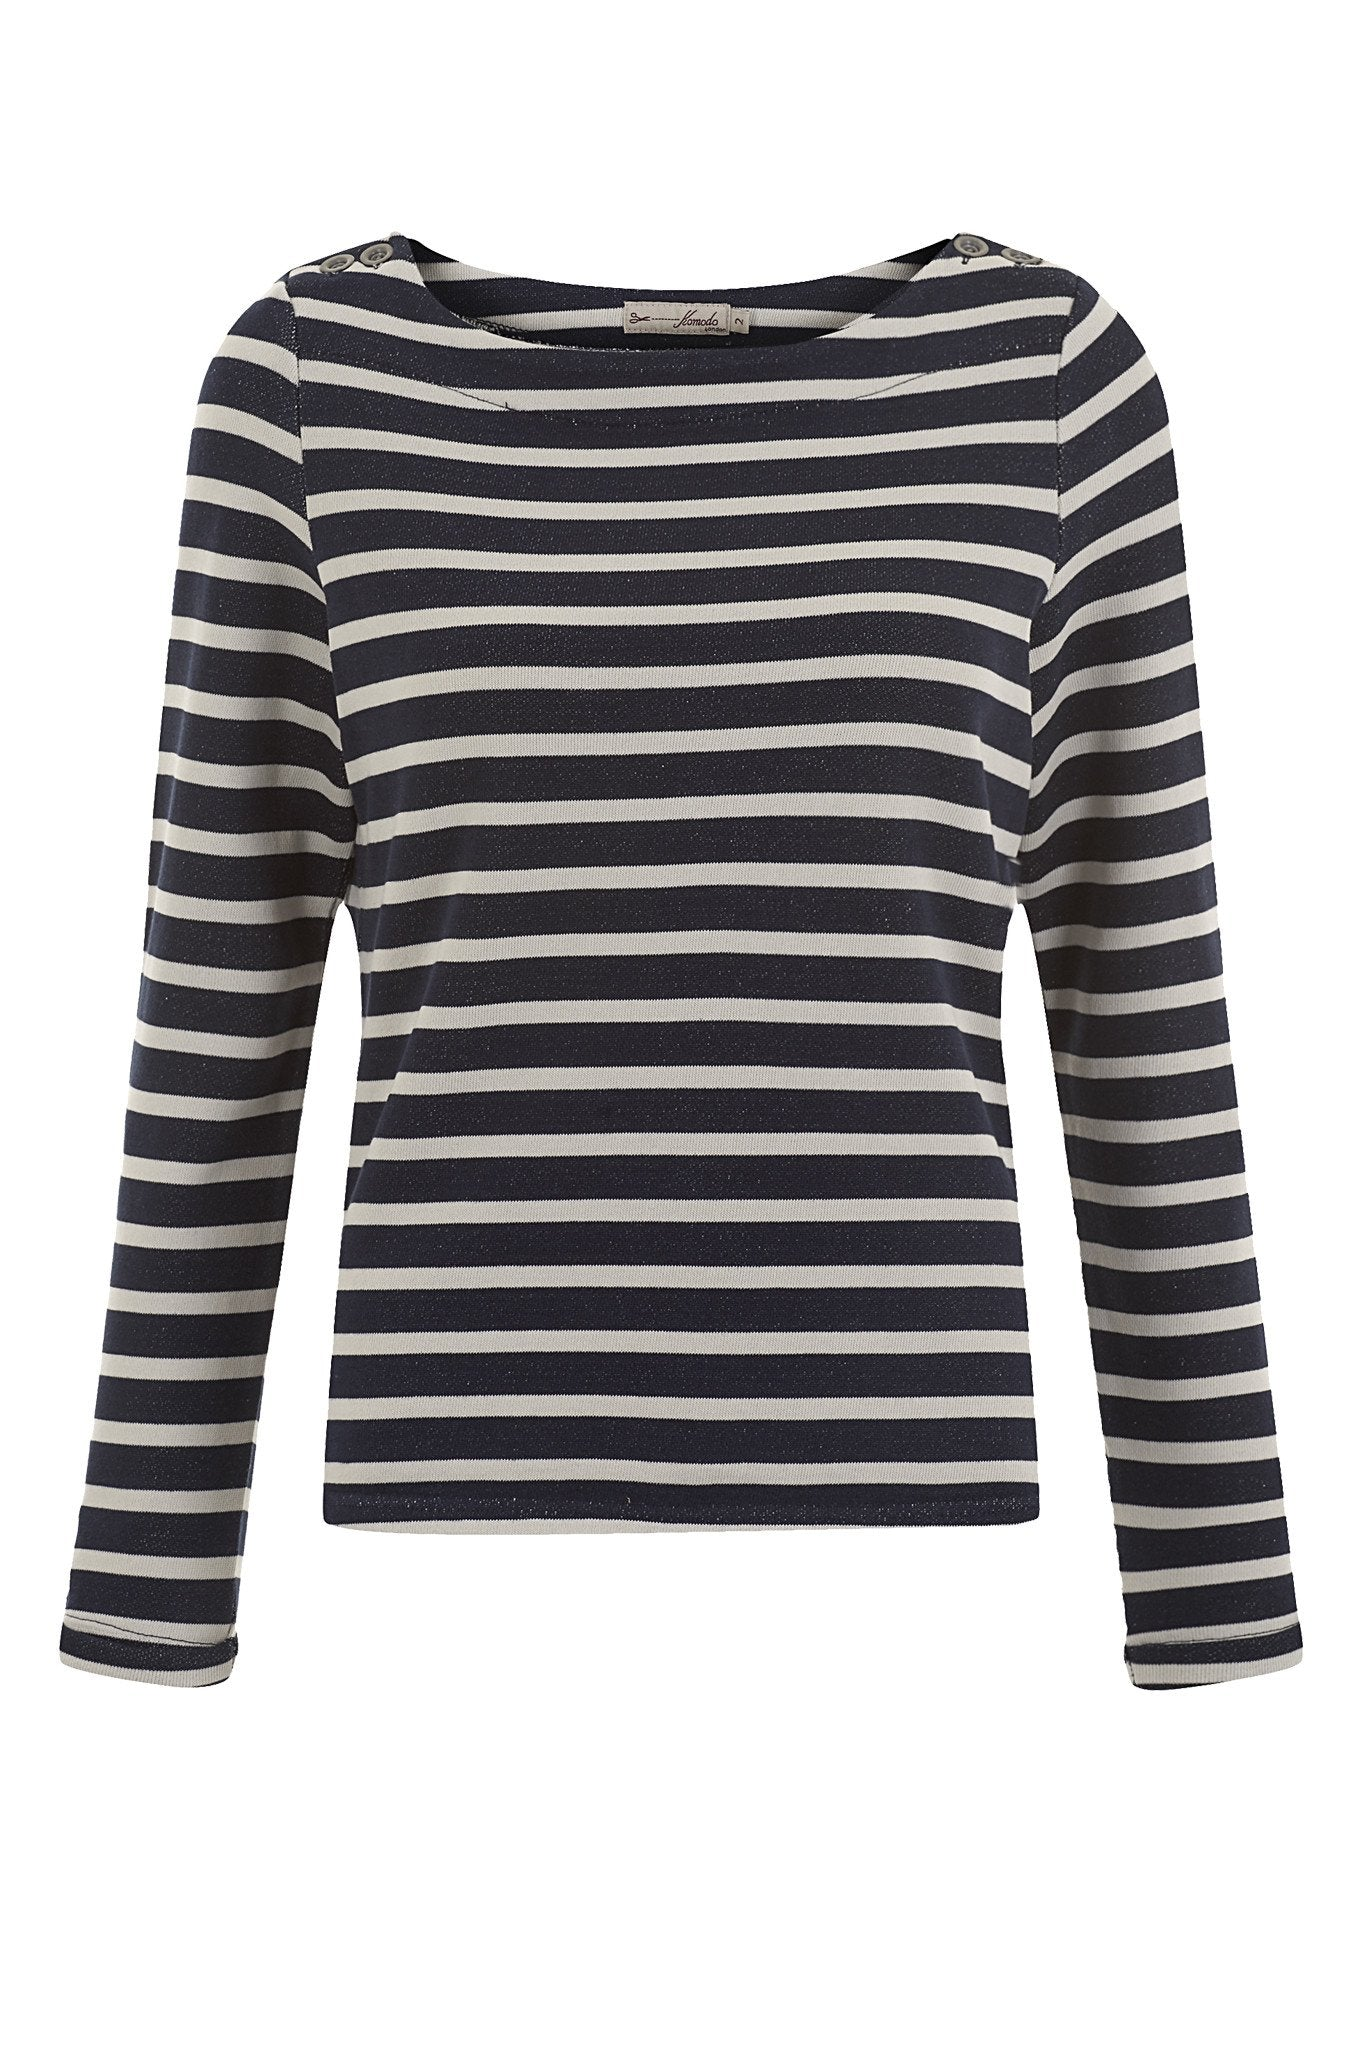 Top - FLORITA Organic Cotton Stripe Jumper